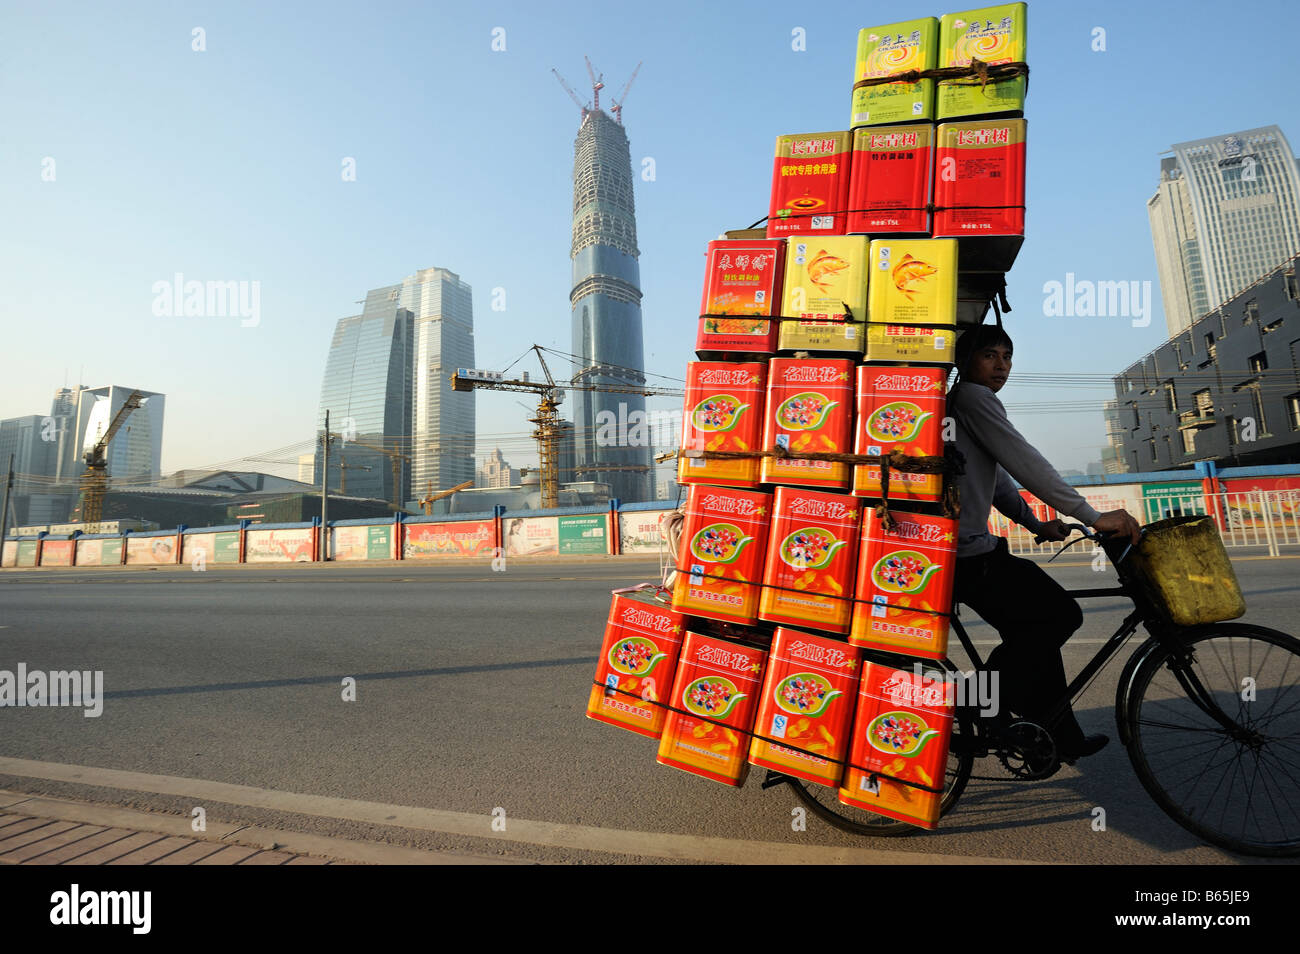 A man rides a bicycle with cooking oil past a construction site in Guangzhou, Guangdong, China. 26-Dec-2008 Stock Photo